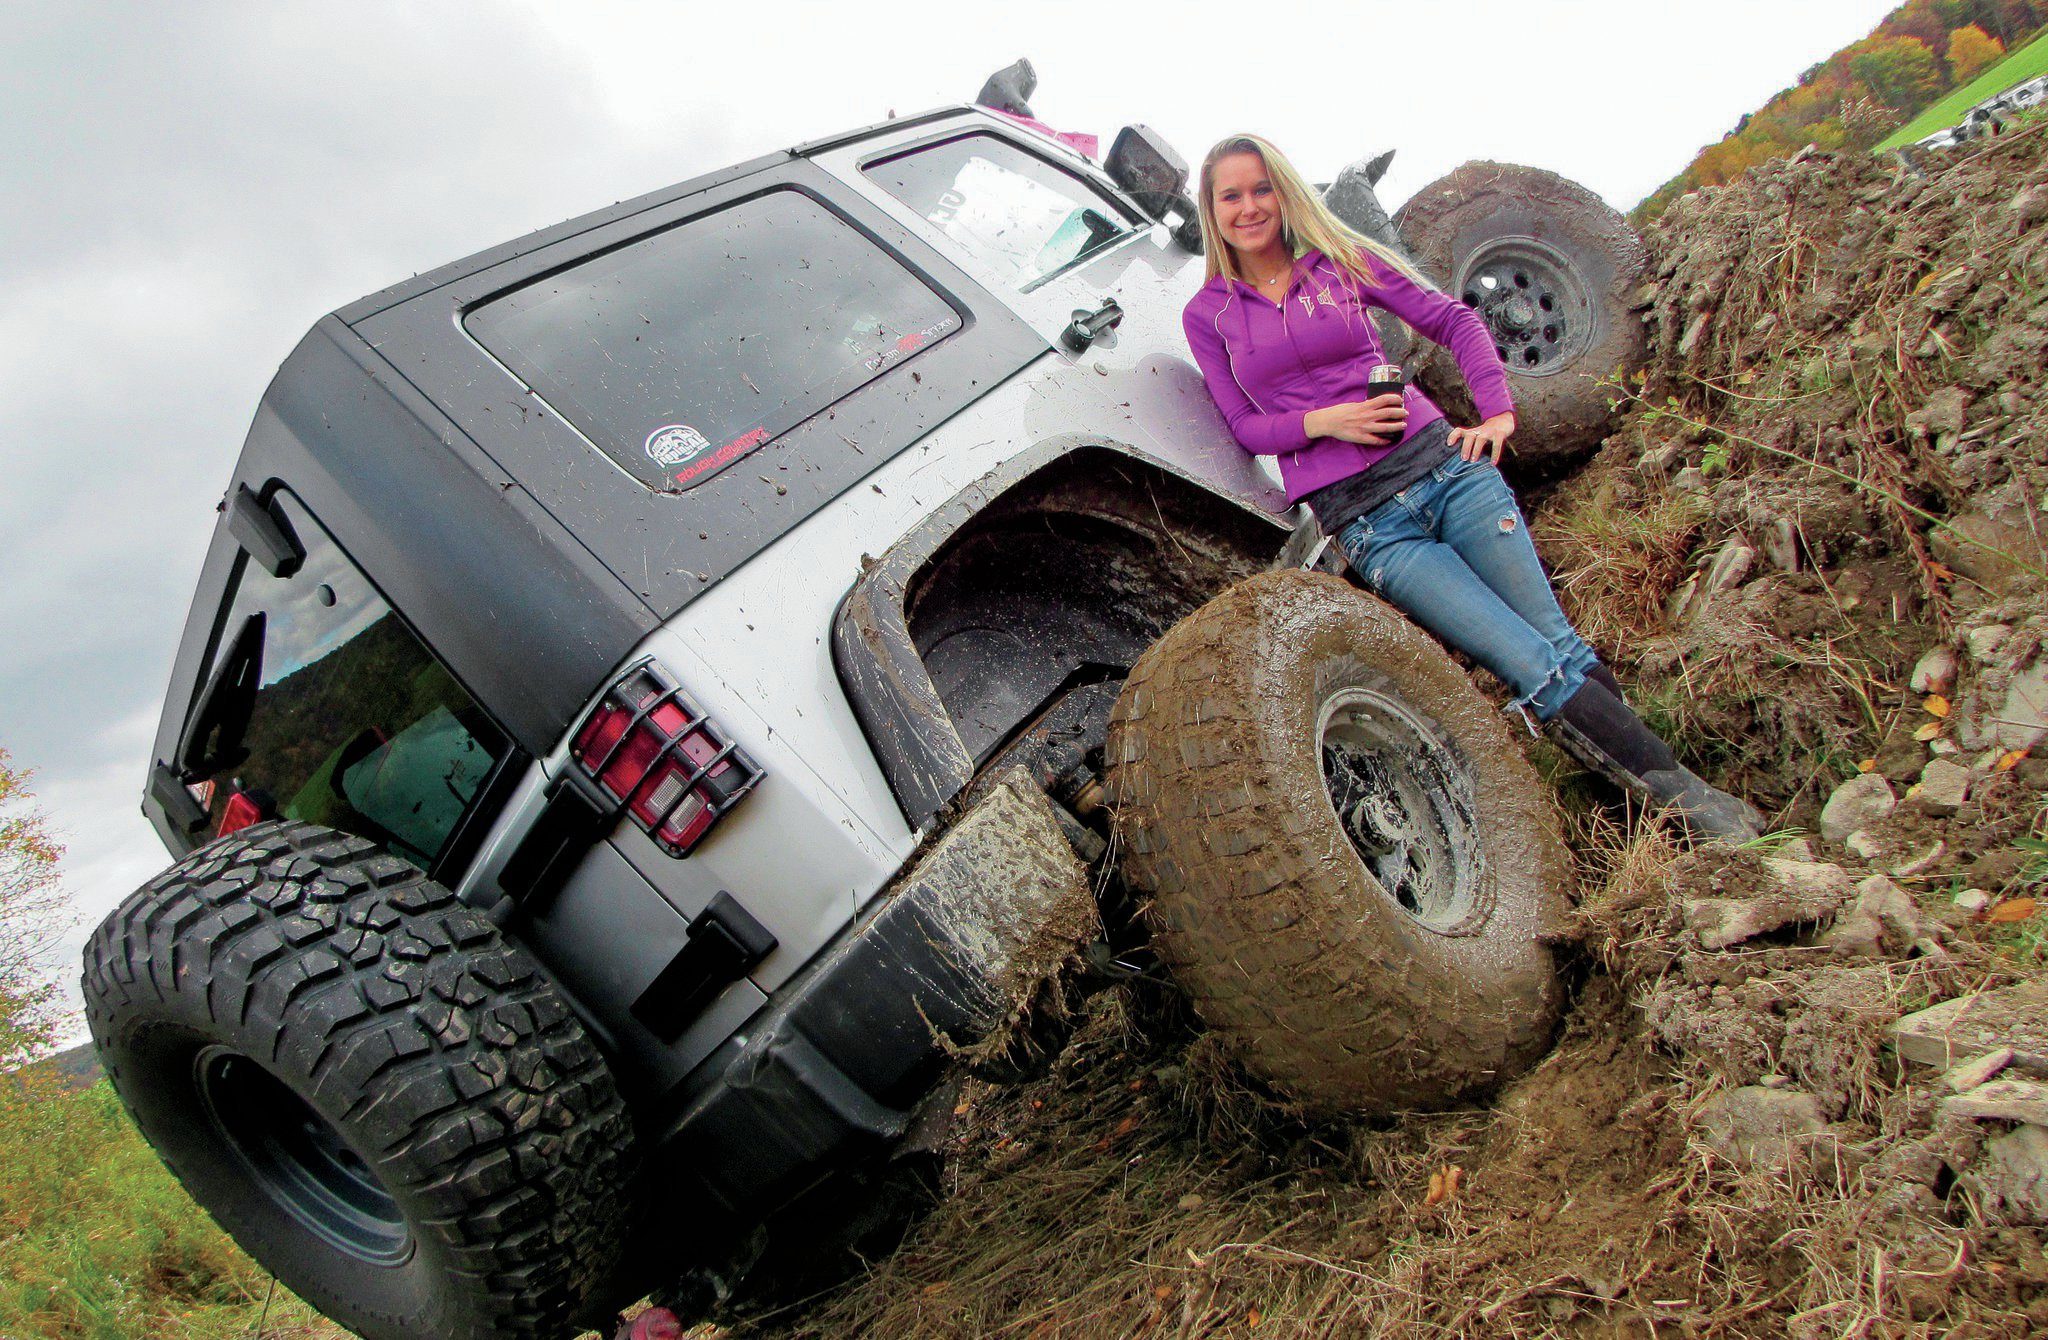 """Gearhead Girl """"I have a few good friends with garages and lifts, and I'm always out there getting my hands dirty."""" Trisha's proficient in tire swapping and in changing oil, brakes, plugs/wires, filters, and tranny fluid/cooler, and in general maintenance. """"I love being a capable woman!"""""""